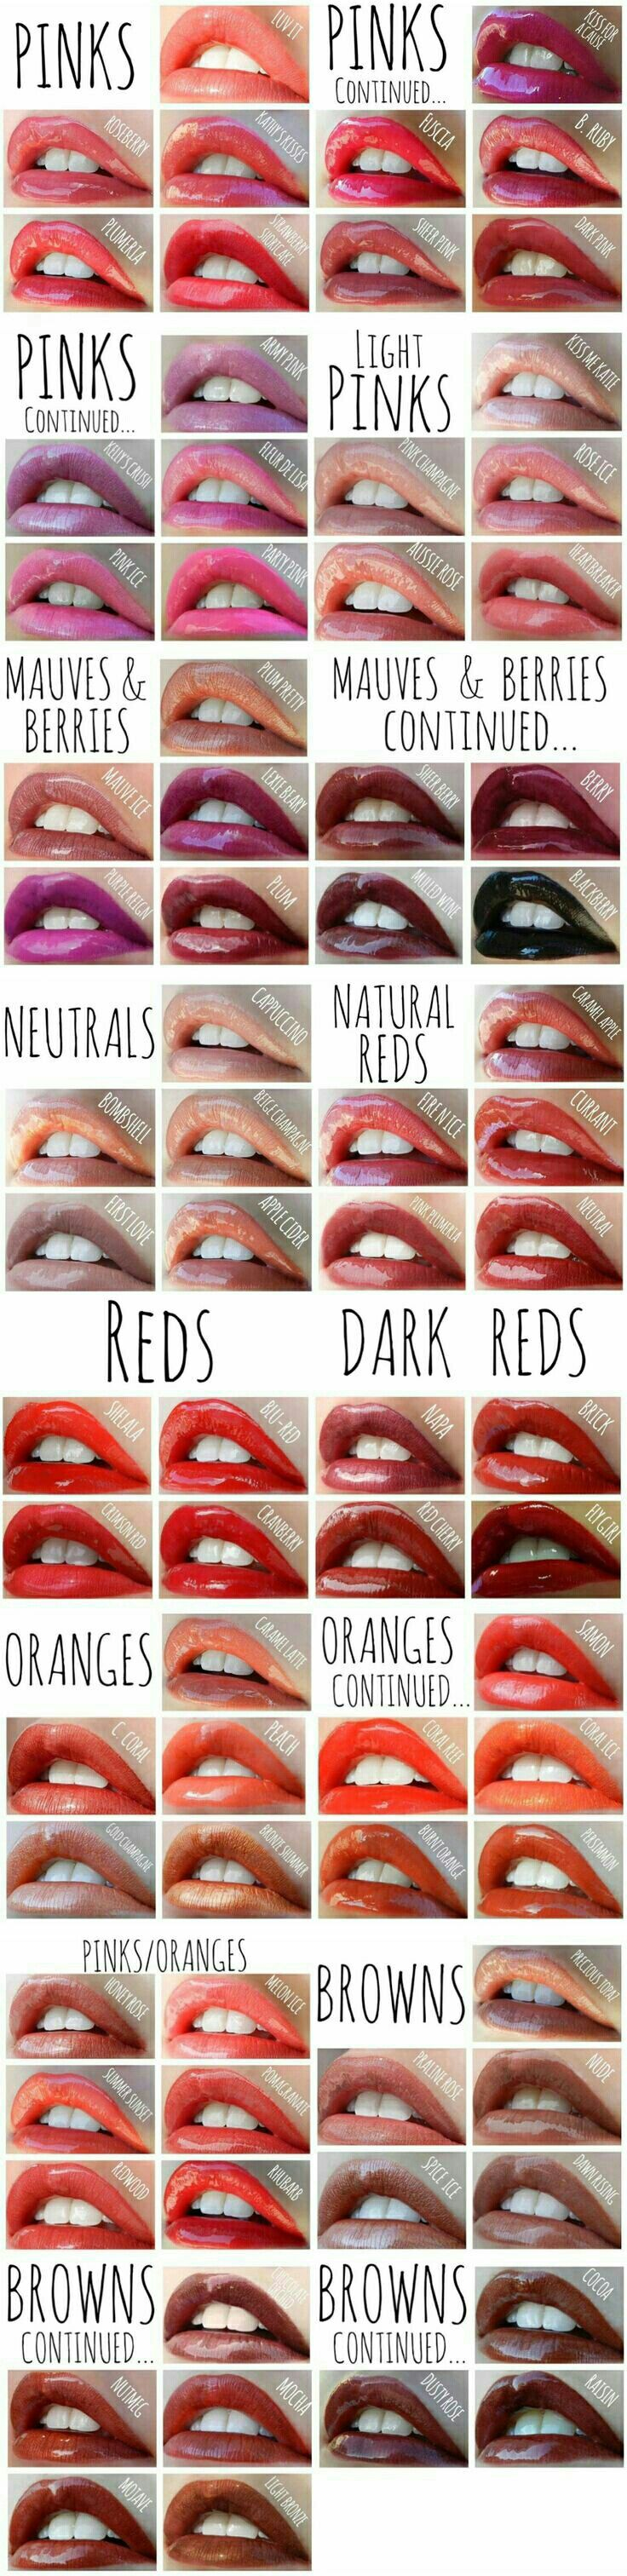 LipSense lasts UP TO 18 HOURS! KissProof, SmudgeProof, WaterProof Lip Color! wax free, lead free, gluten free, gmo free, vegan, made in USA! CLICK TO ORDER!  100% satisfaction guarantee!